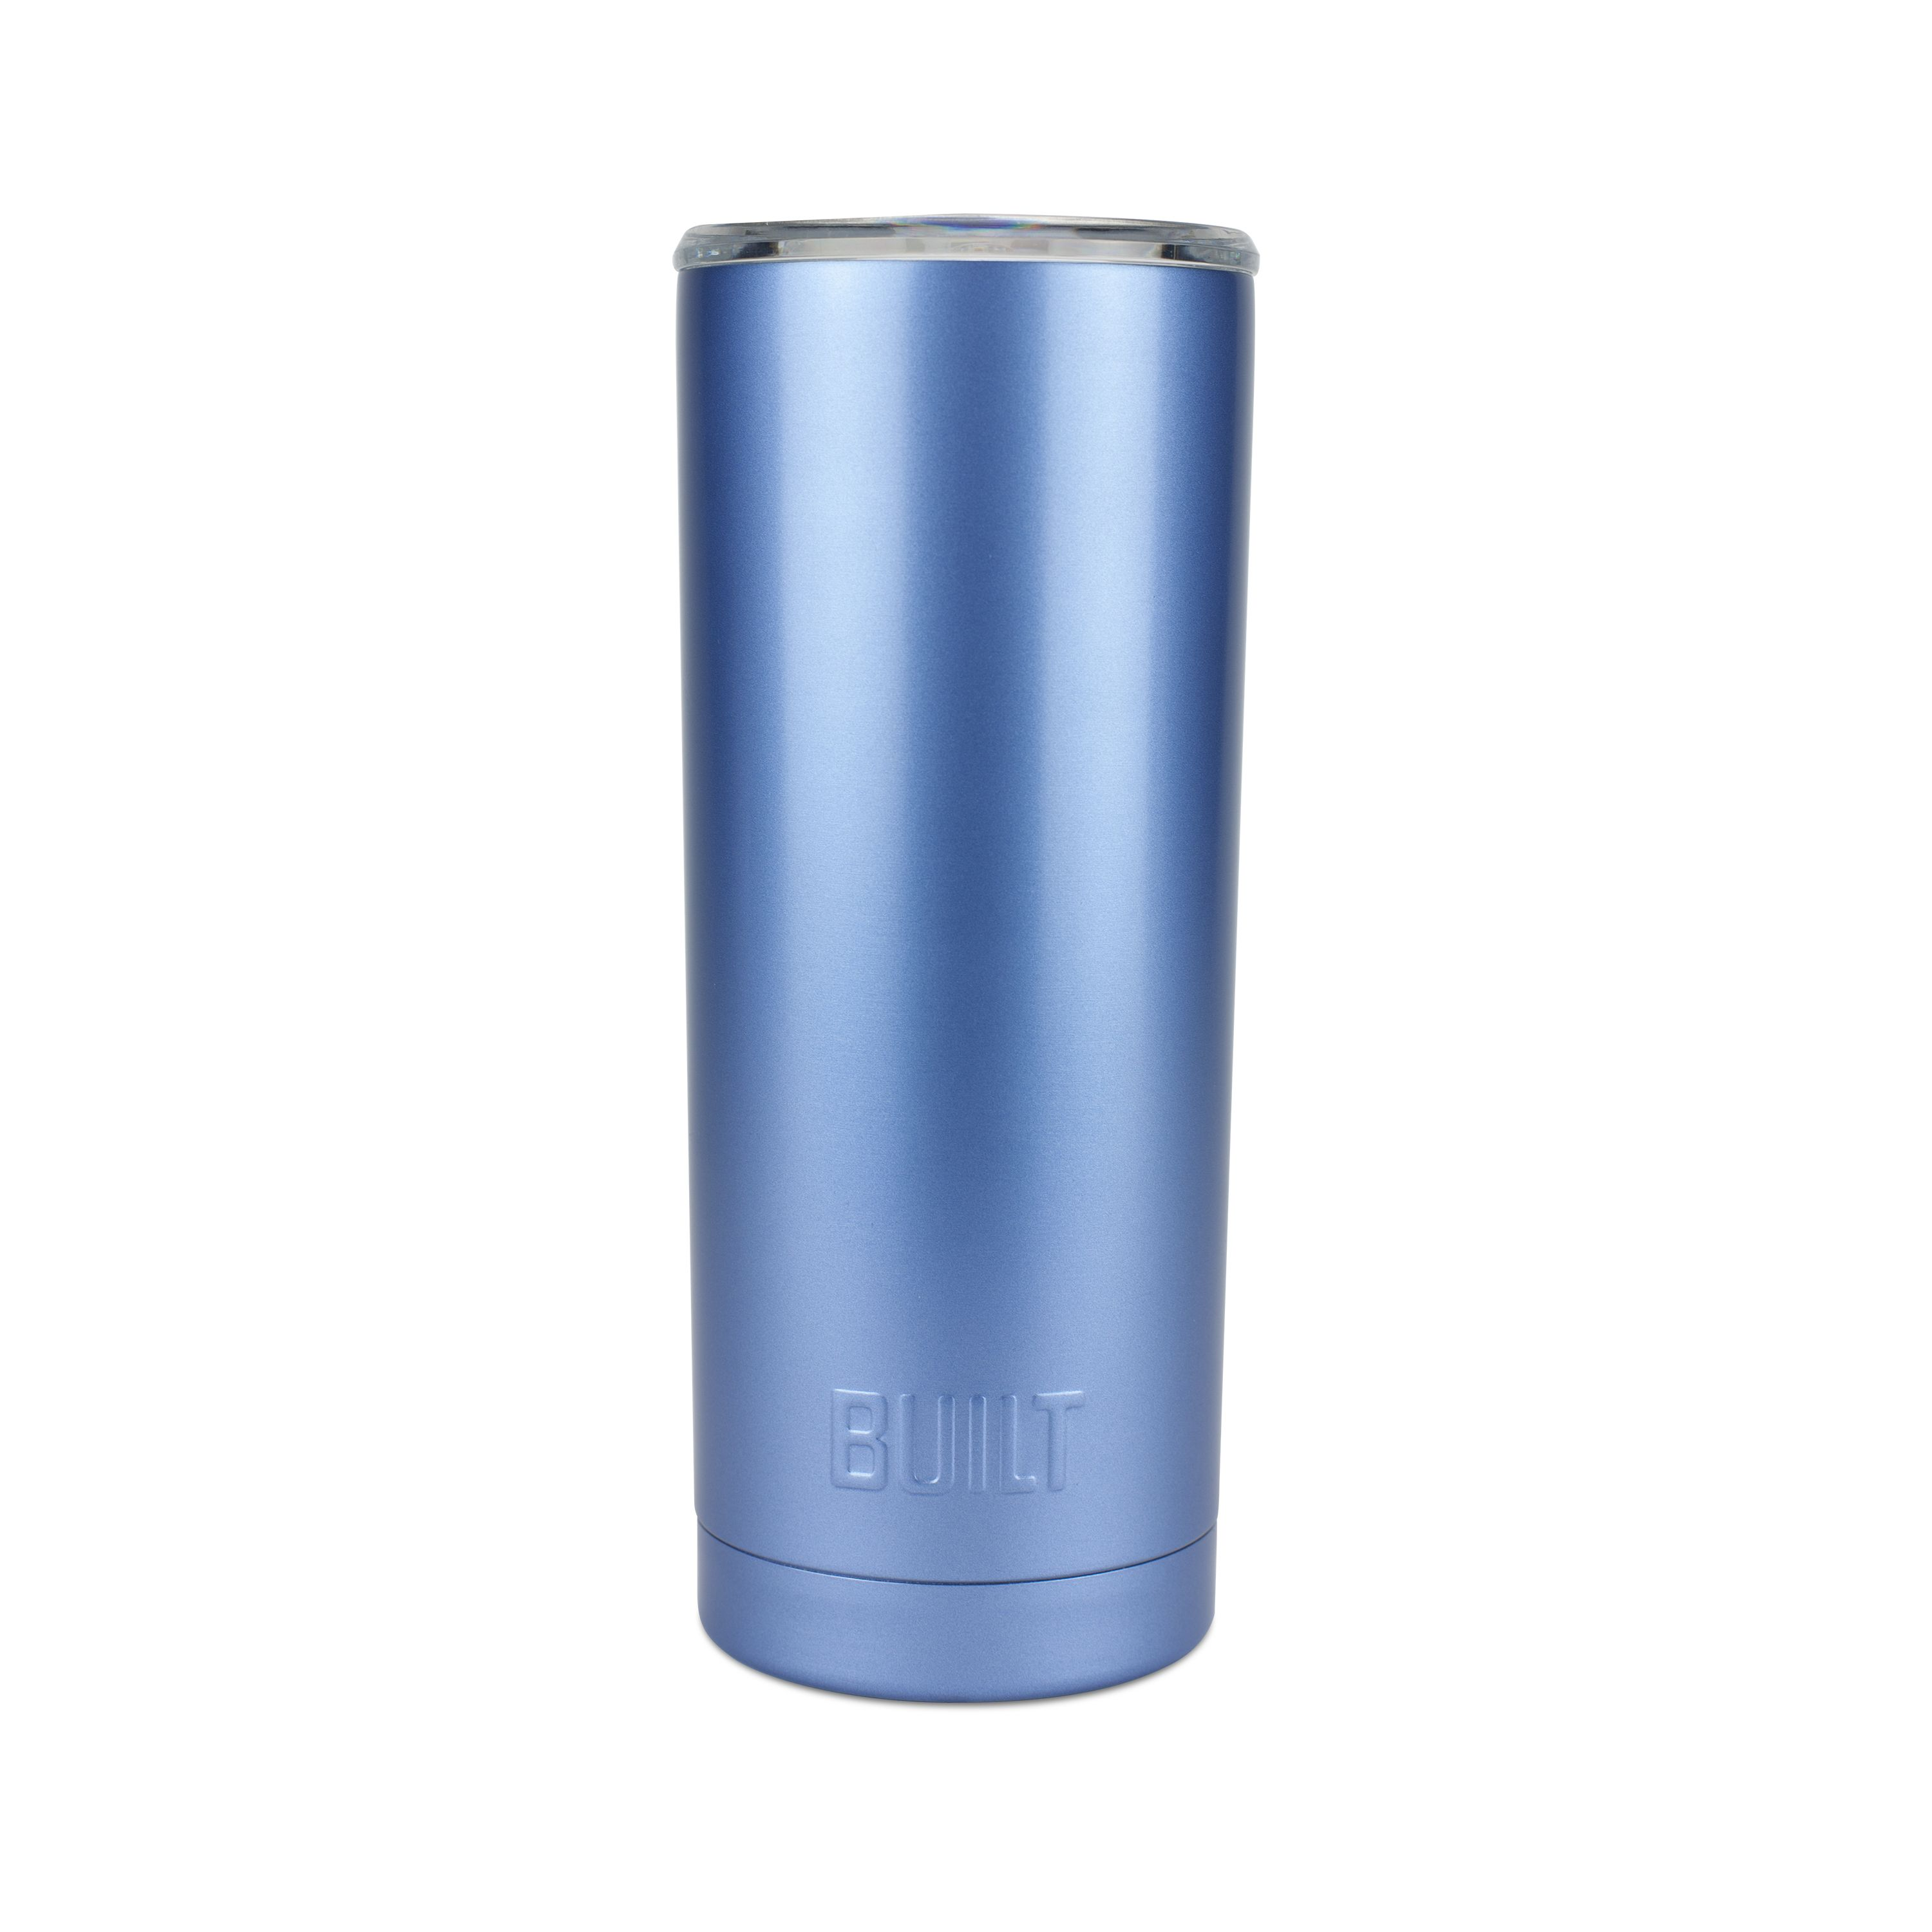 1d9892b6153 Built Double Wall Stainless Steel Vacuum Insulated Tumbler, 20 Oz -  Walmart.com